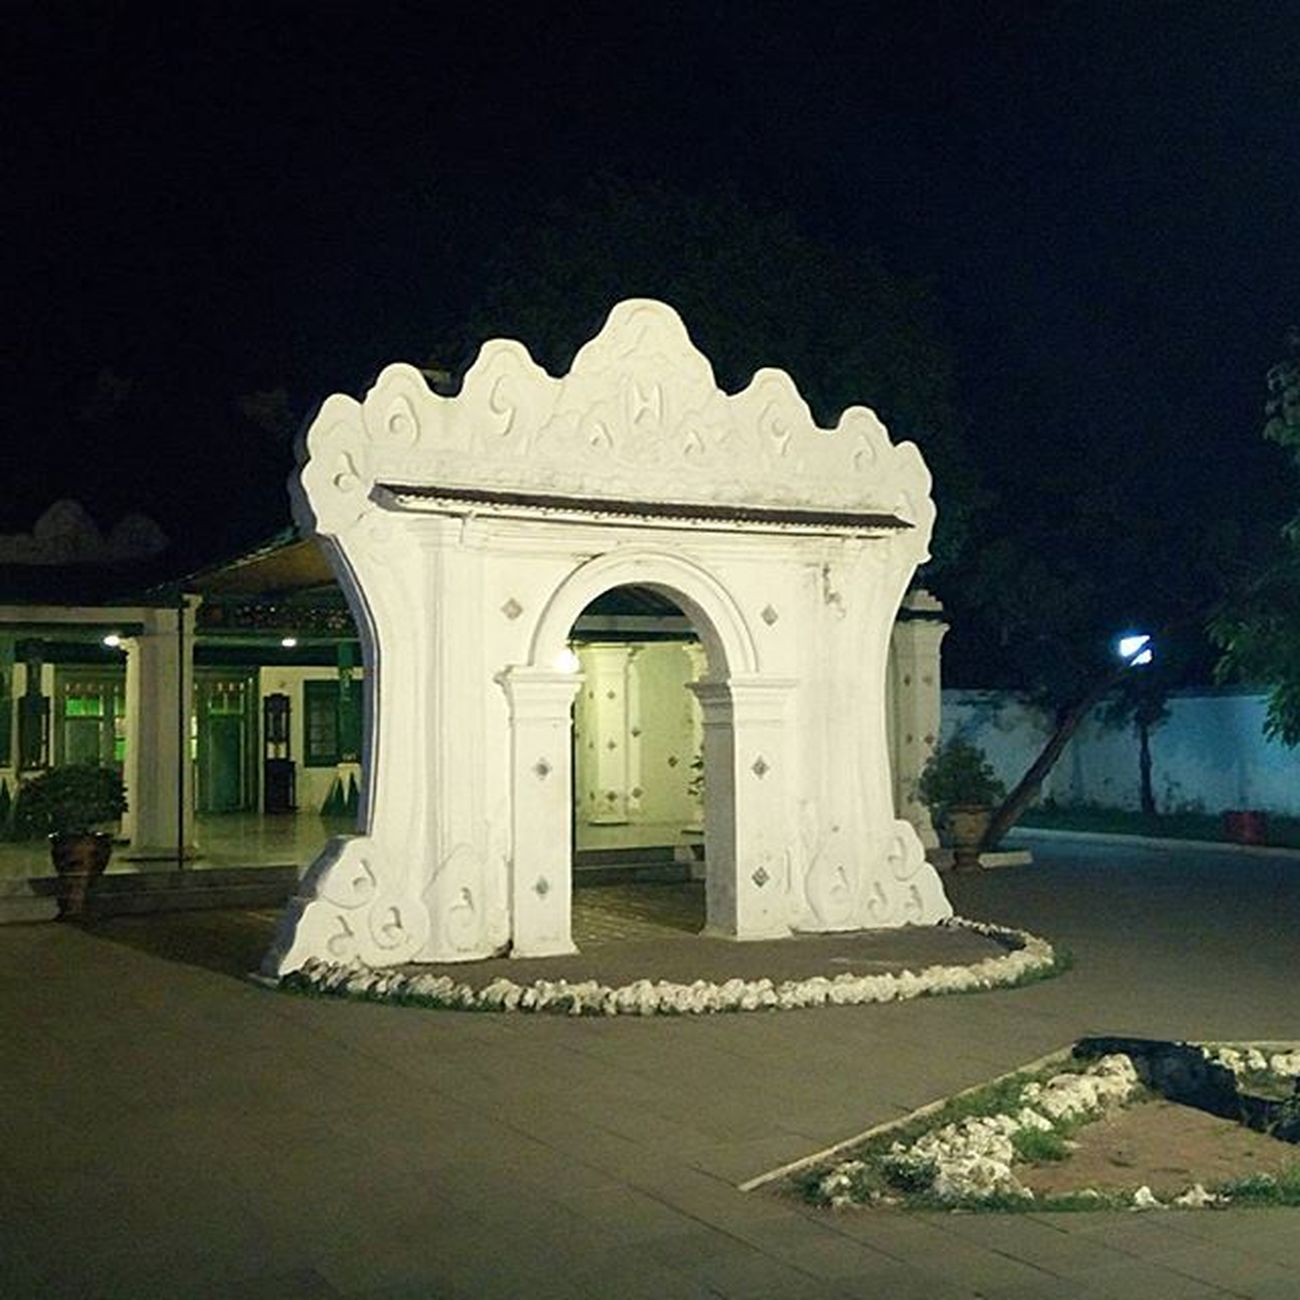 the 600 hundred year old gate long life the Sultanate Sefo  Nyribon Nyiremai